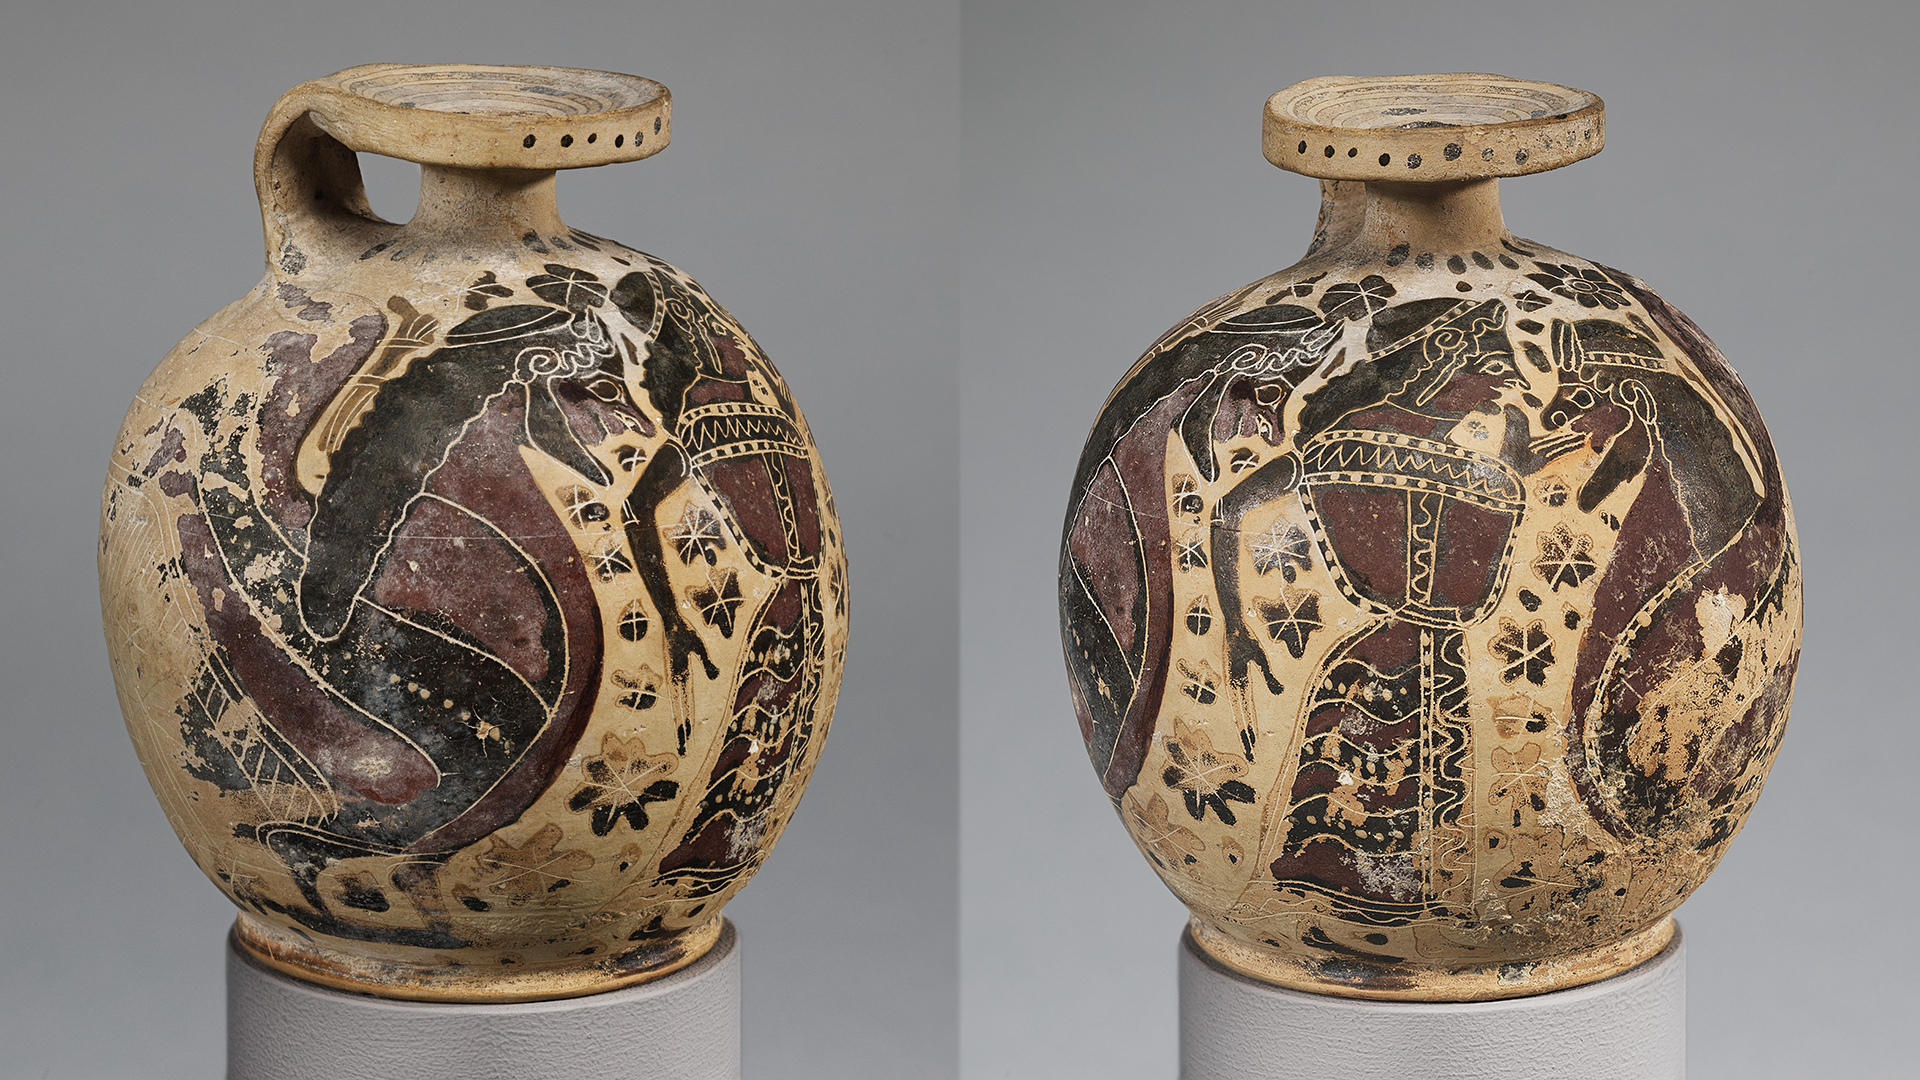 Two side-by-side photographs show different sides of an ancient Greek terracotta flask on a gray stand. The left shows a painted scene of a woman dancer, flanked on each side by bearded sirens. The right image shows one of the bearded sirens centered on the terracotta pot.